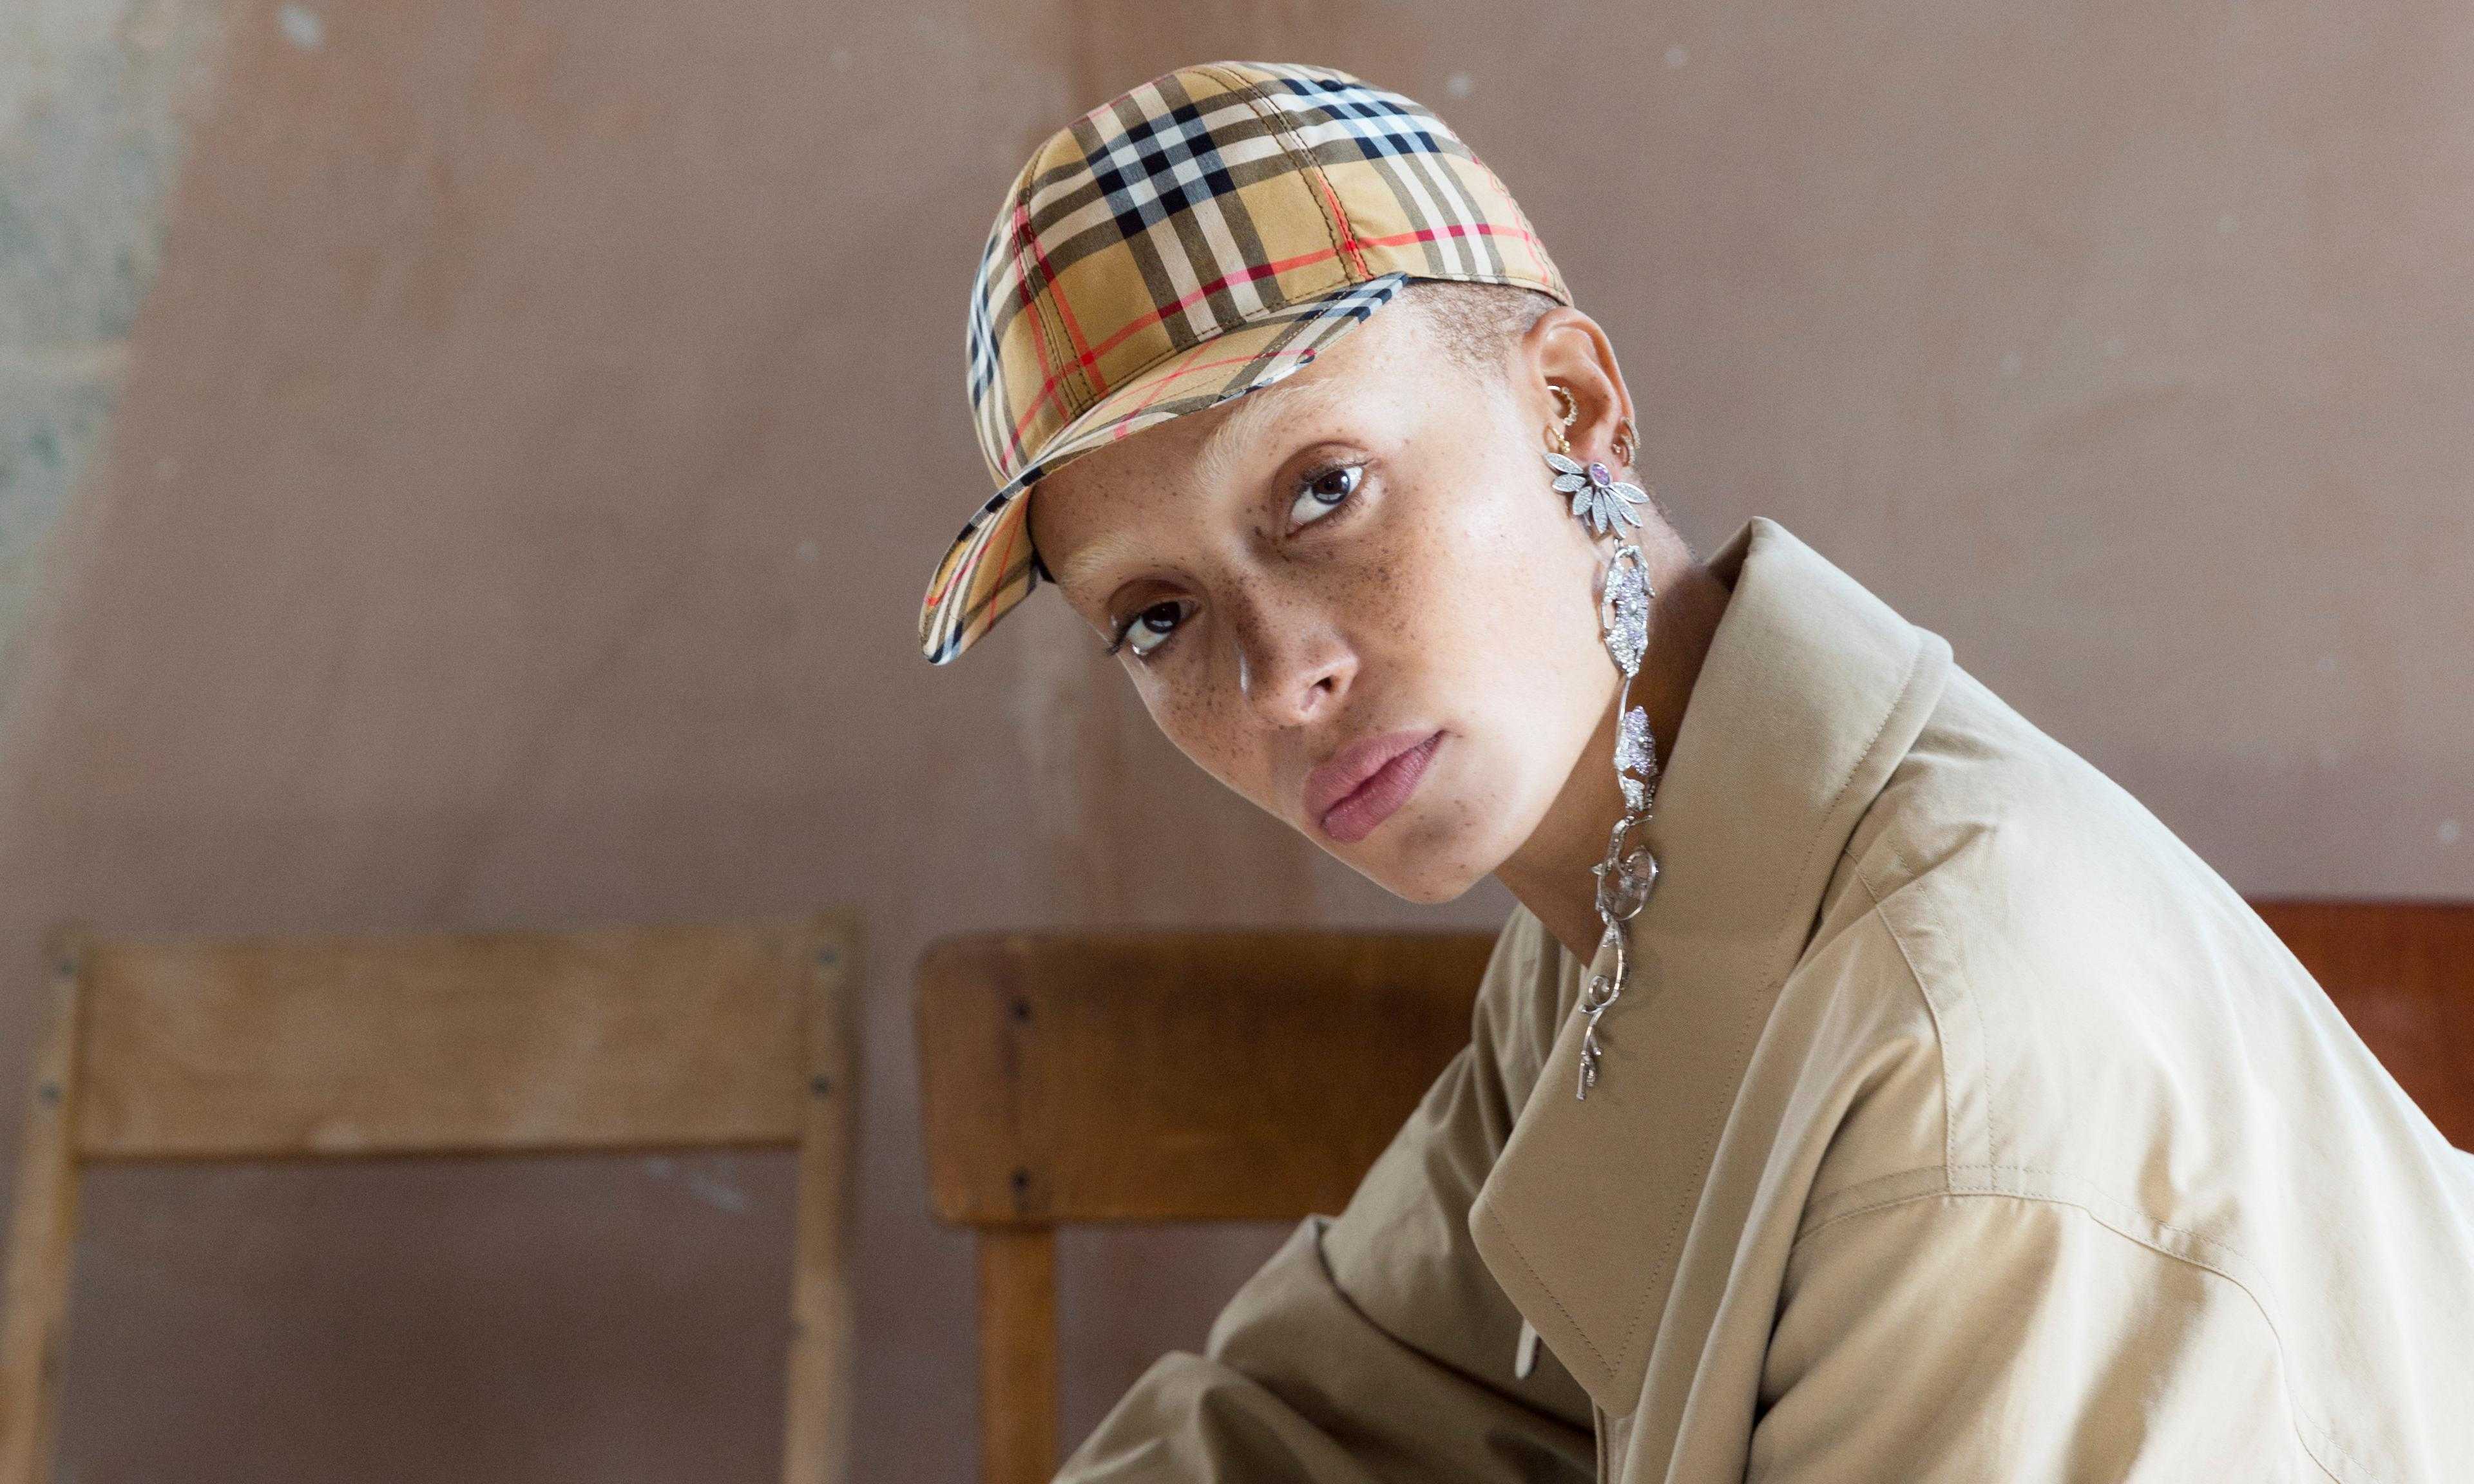 How Adwoa Aboah is shaking up the fashion industry